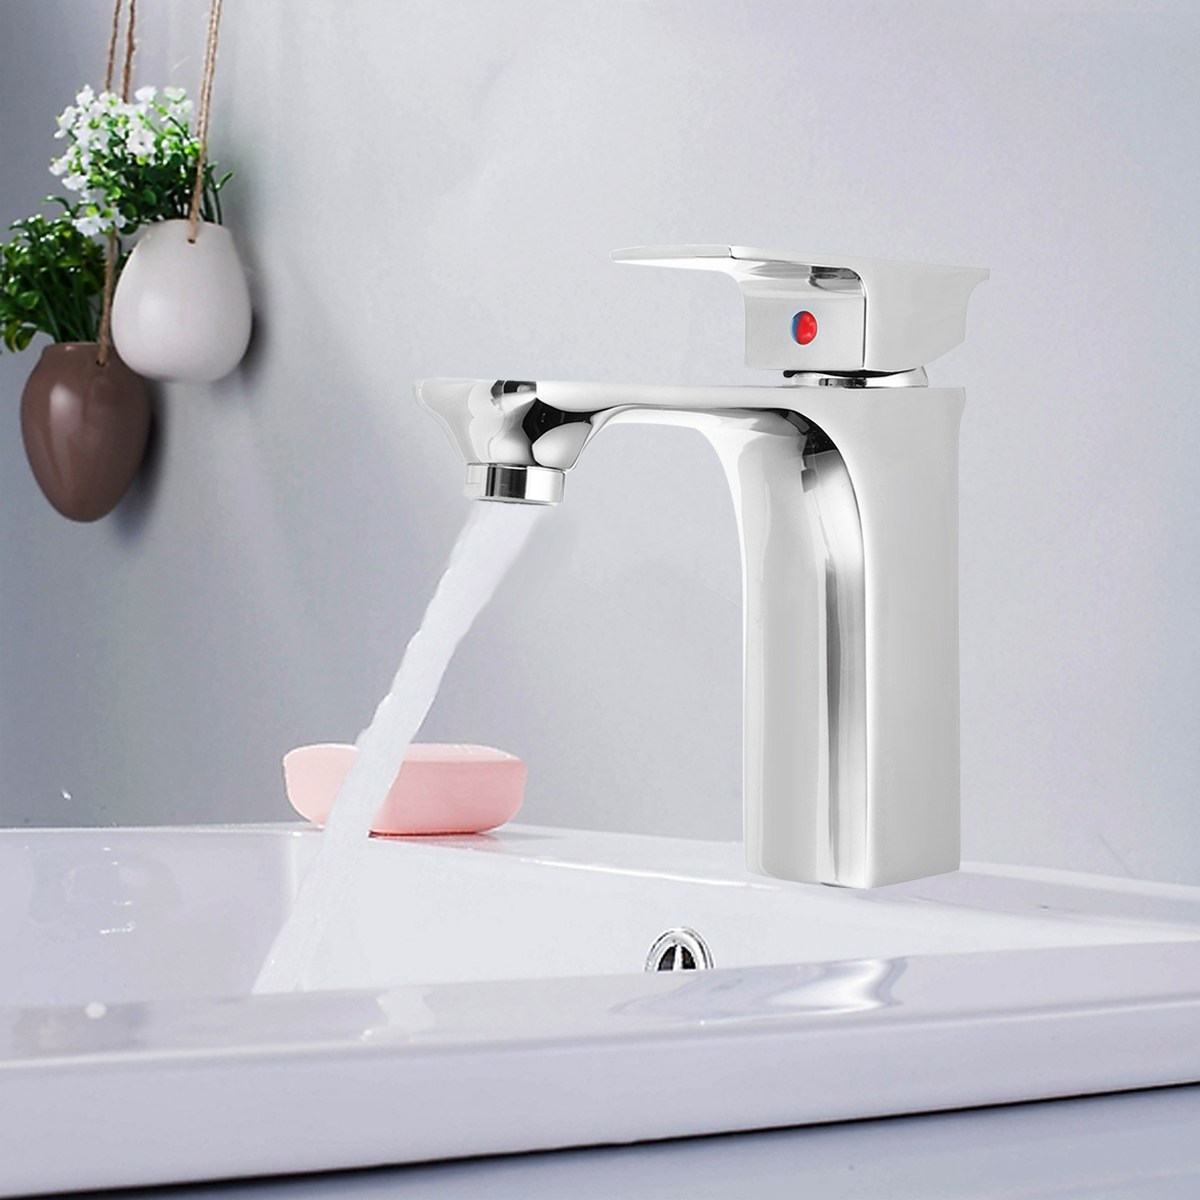 Chrome/Black Brass Bathroom Basin Low Faucet Single Hole/Handle Waterfall Bath Sink Faucet Hot and Cold Water Mixer Tap xoxo modern bathroom products chrome finished hot and cold water basin faucet mixer single handle water tap 83007